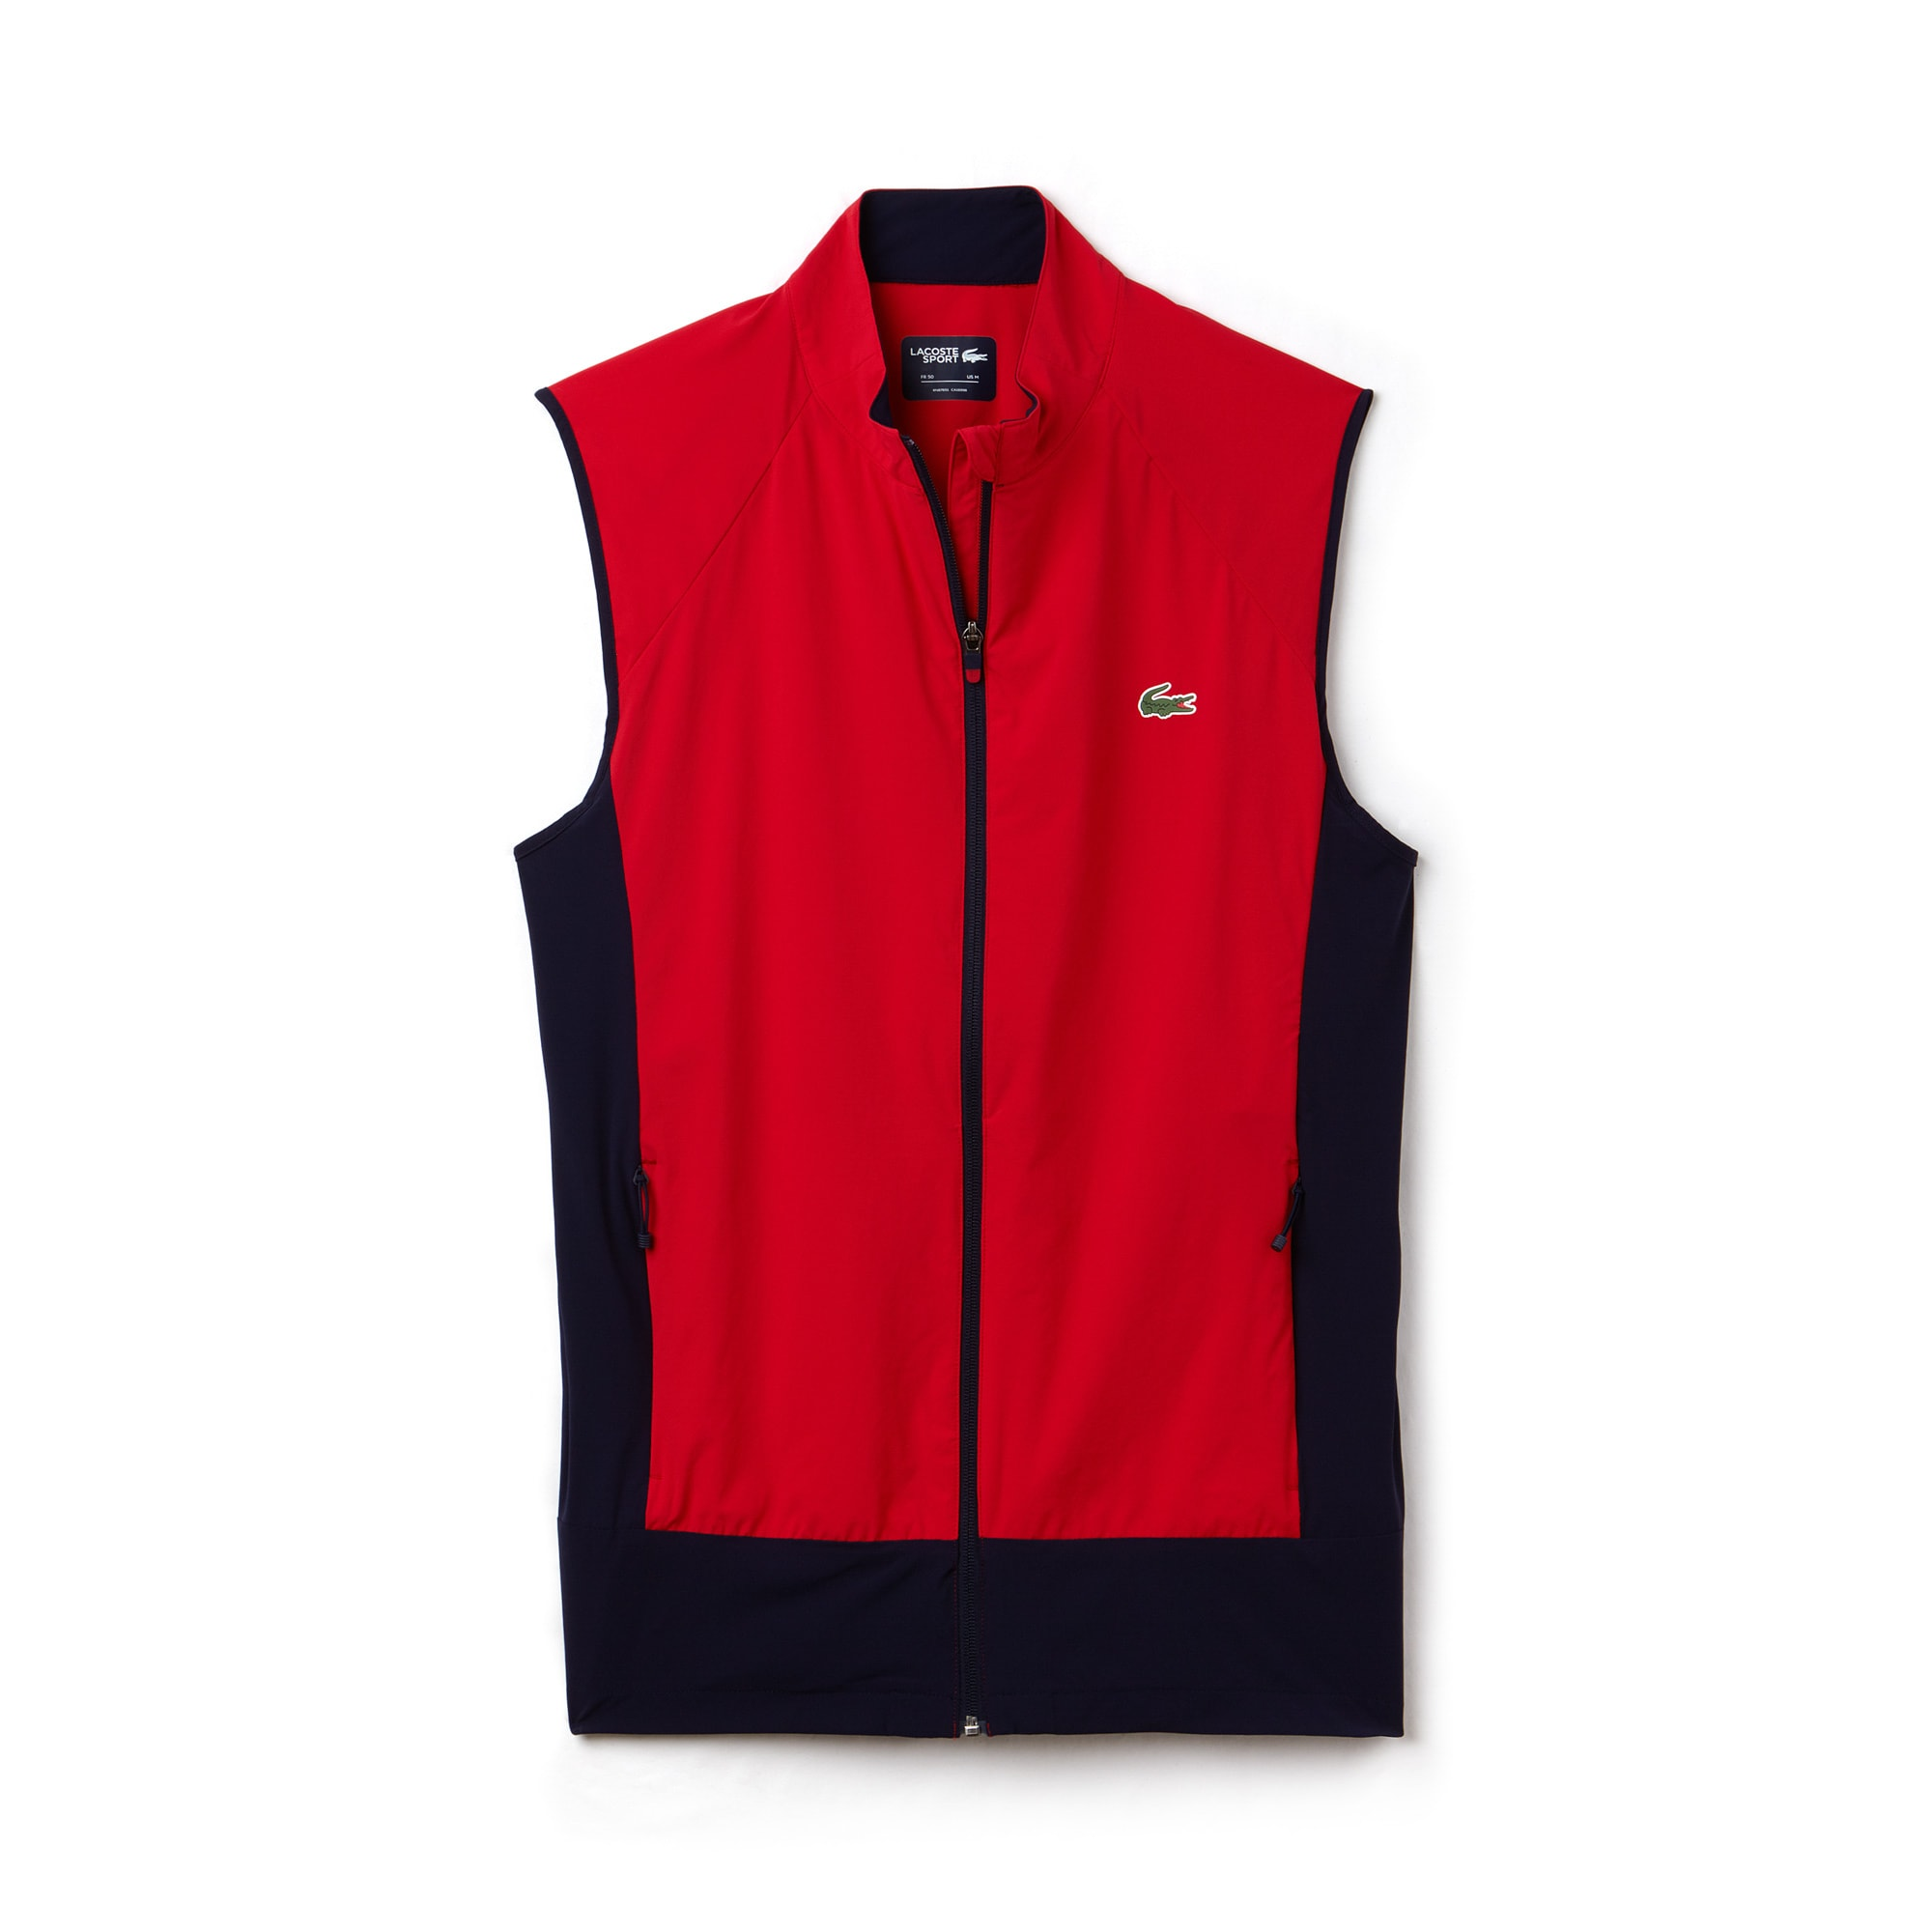 라코스테 Lacoste Mens SPORT Colorblock Technical Taffeta Golf Quilted Vest,red / navy blue